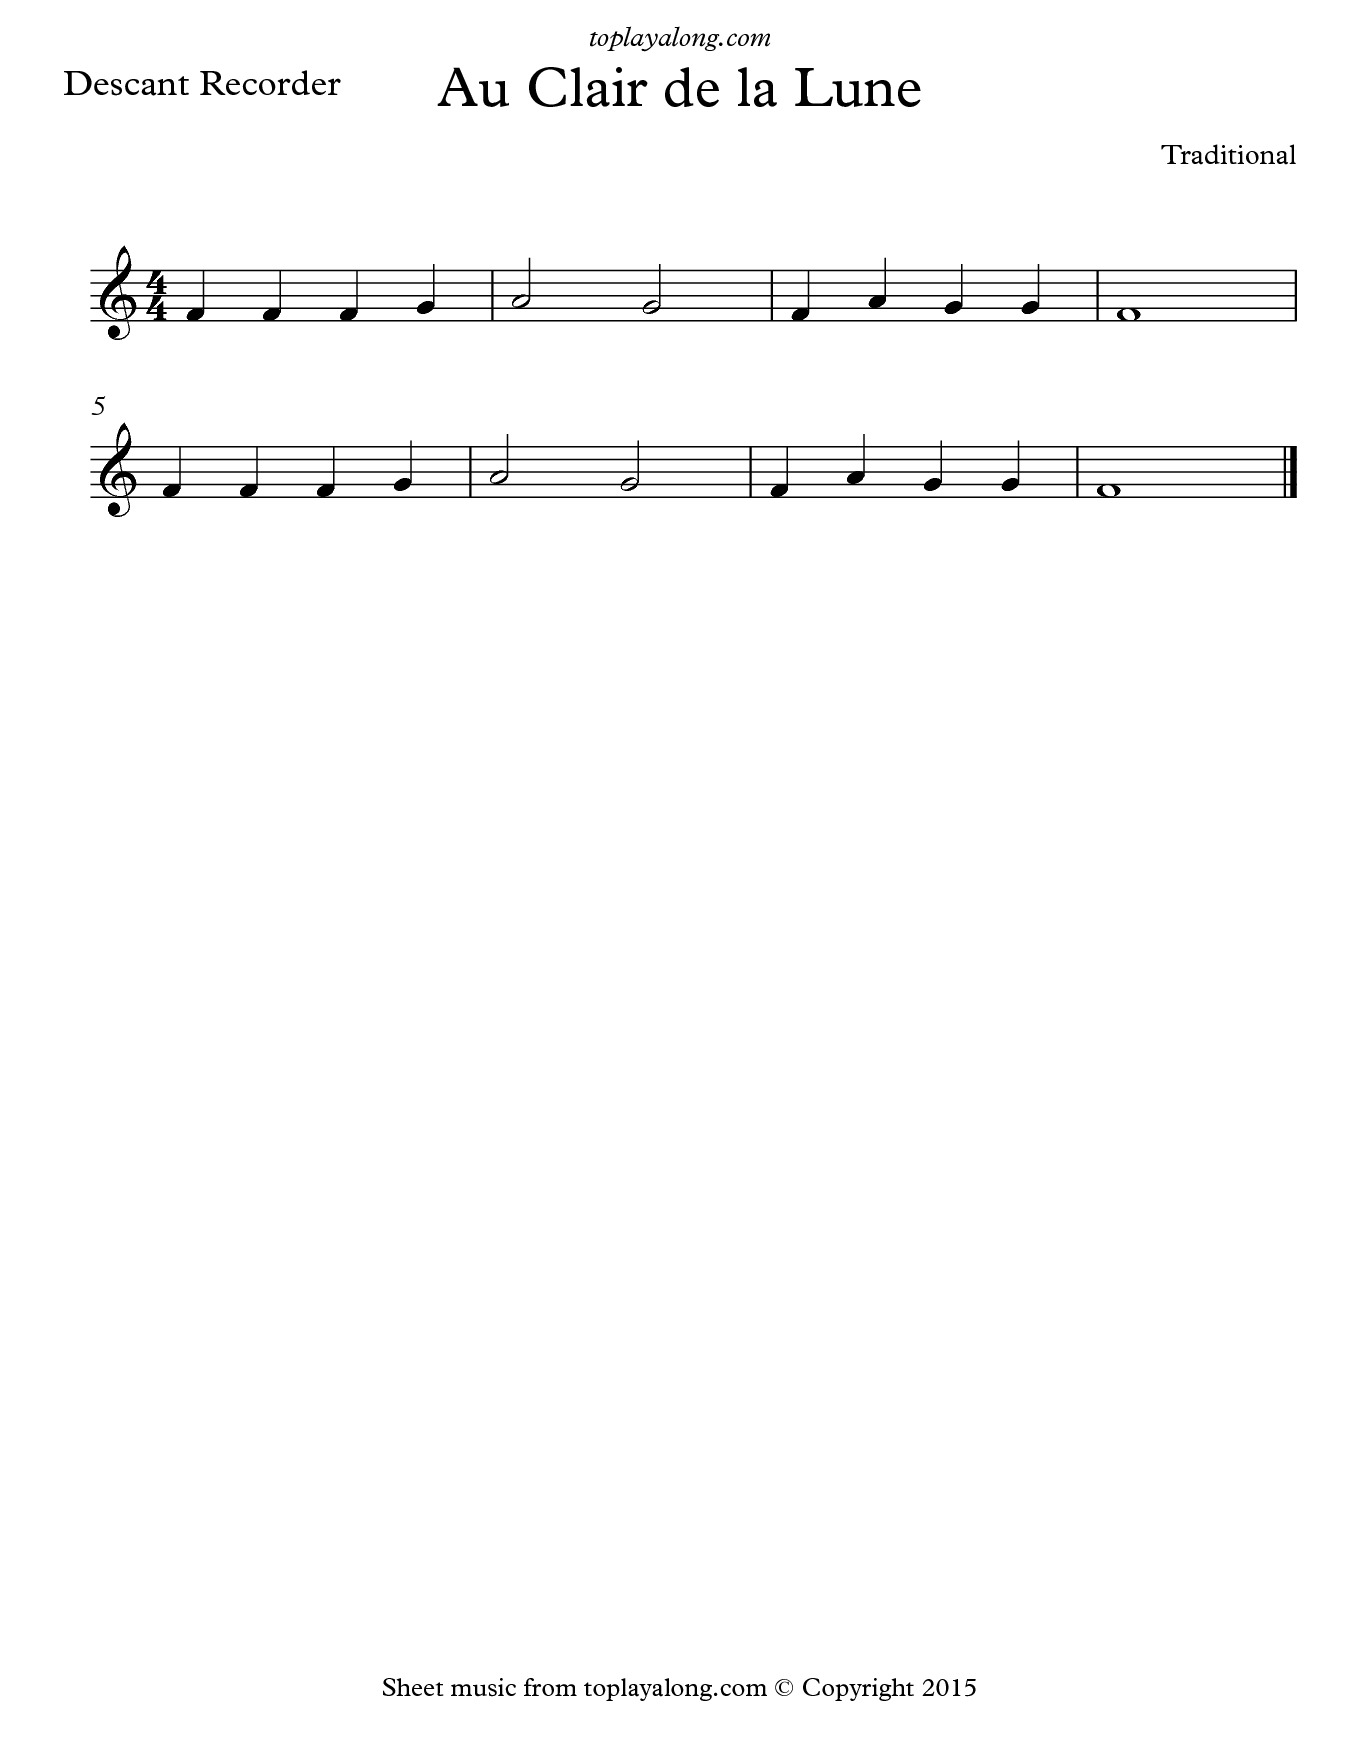 Au Clair de la Lune. Sheet music for Recorder, page 1.